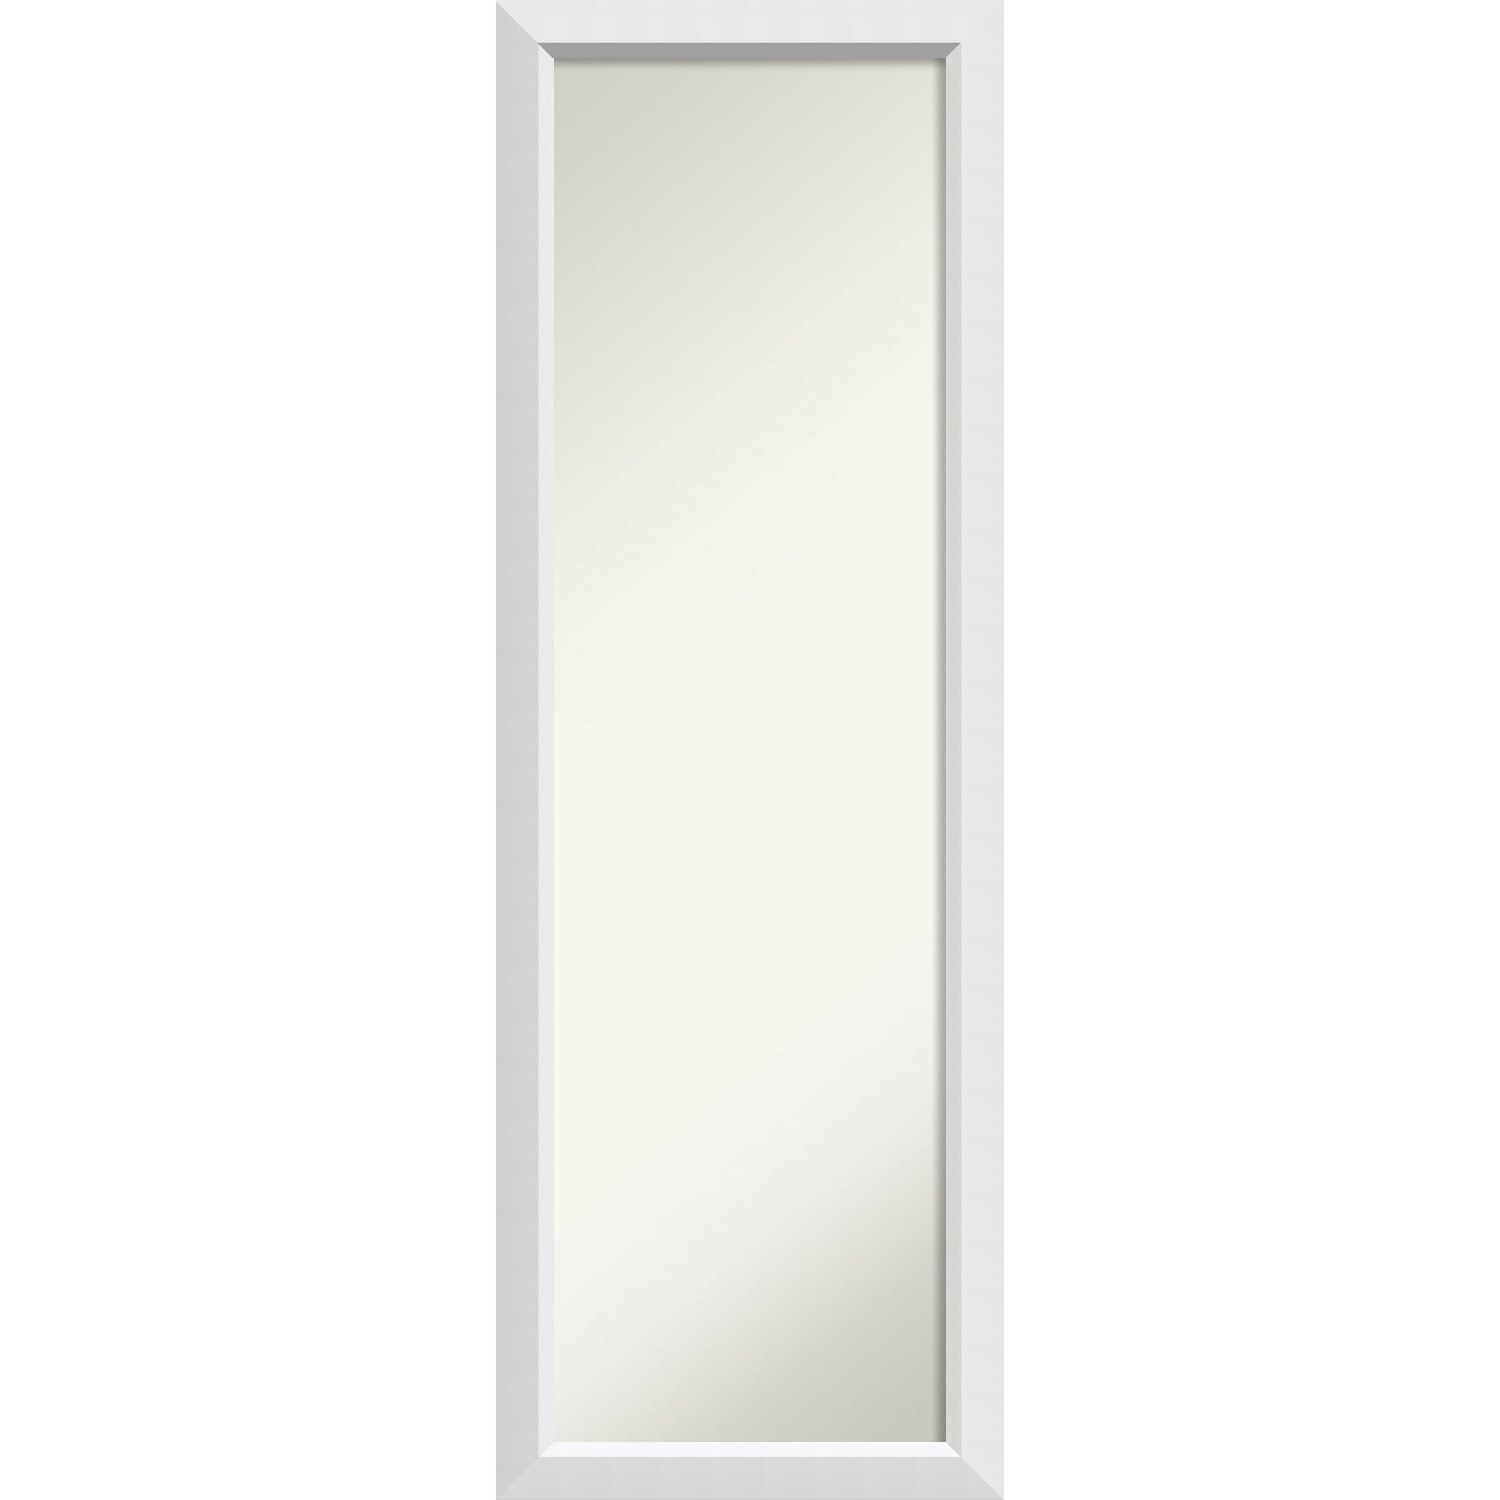 Floor Length Wall Mirrors Pertaining To Most Popular On The Door Full Length Wall Mirror, Blanco White 18 X 52 Inch – 52 X 18 X (View 7 of 20)